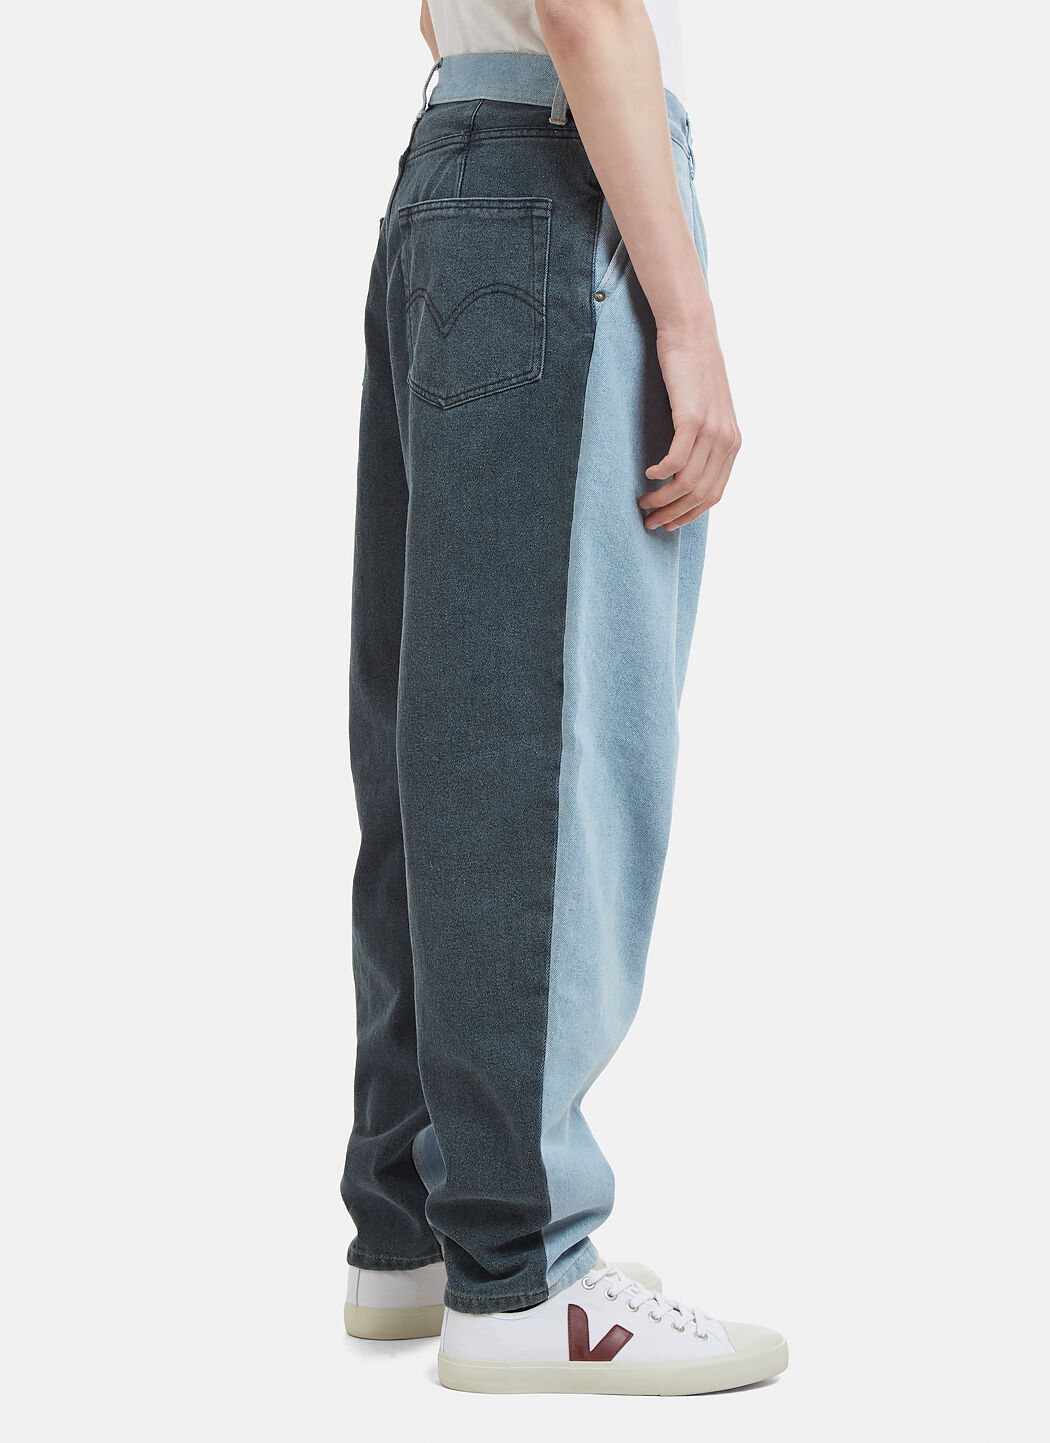 Reused Panel Jeans Hed Mayner W25LBbYBP